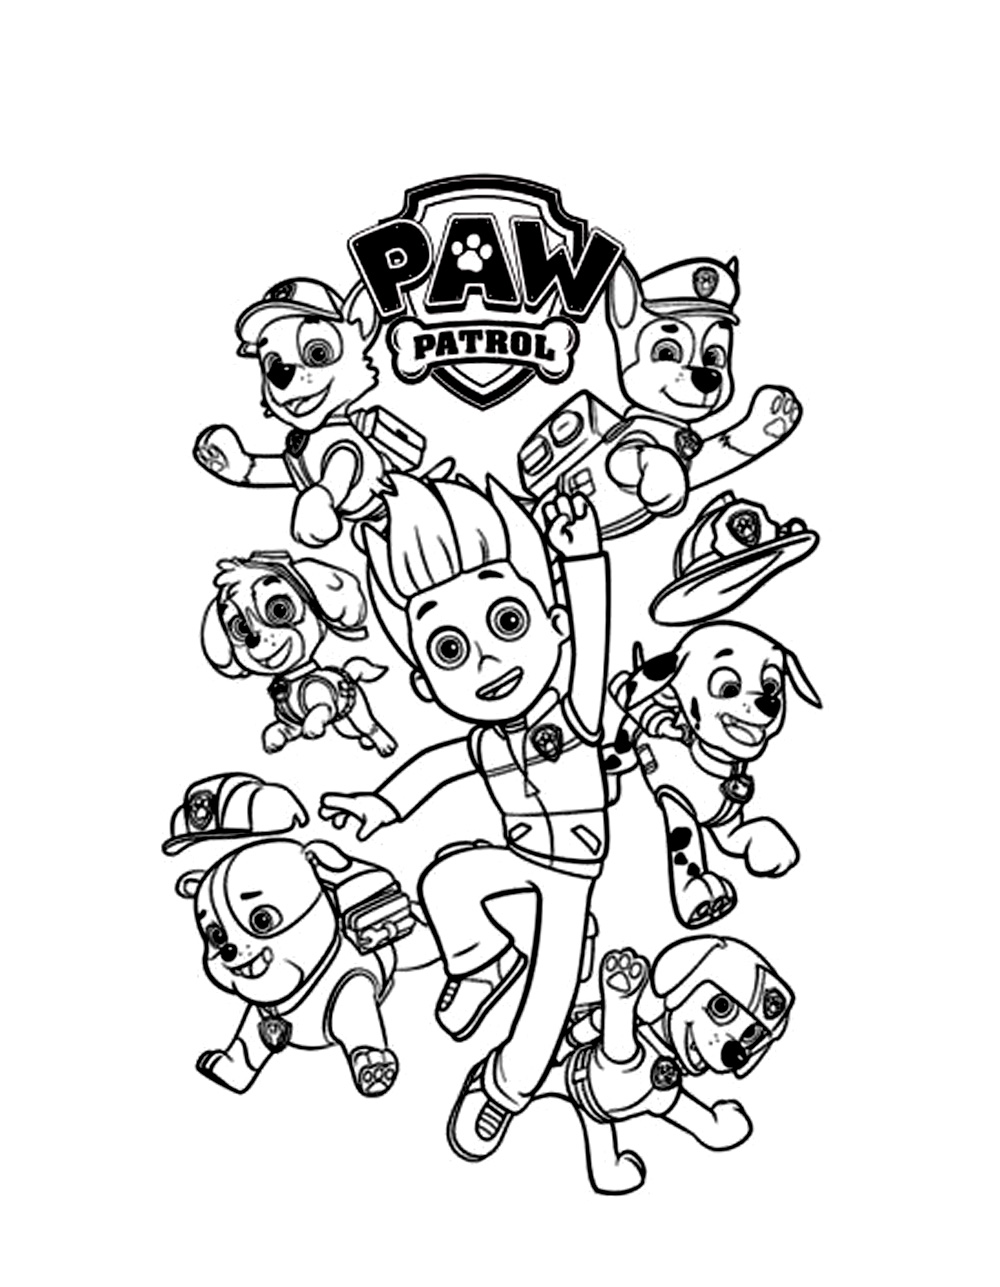 paw patrol kids coloring pages